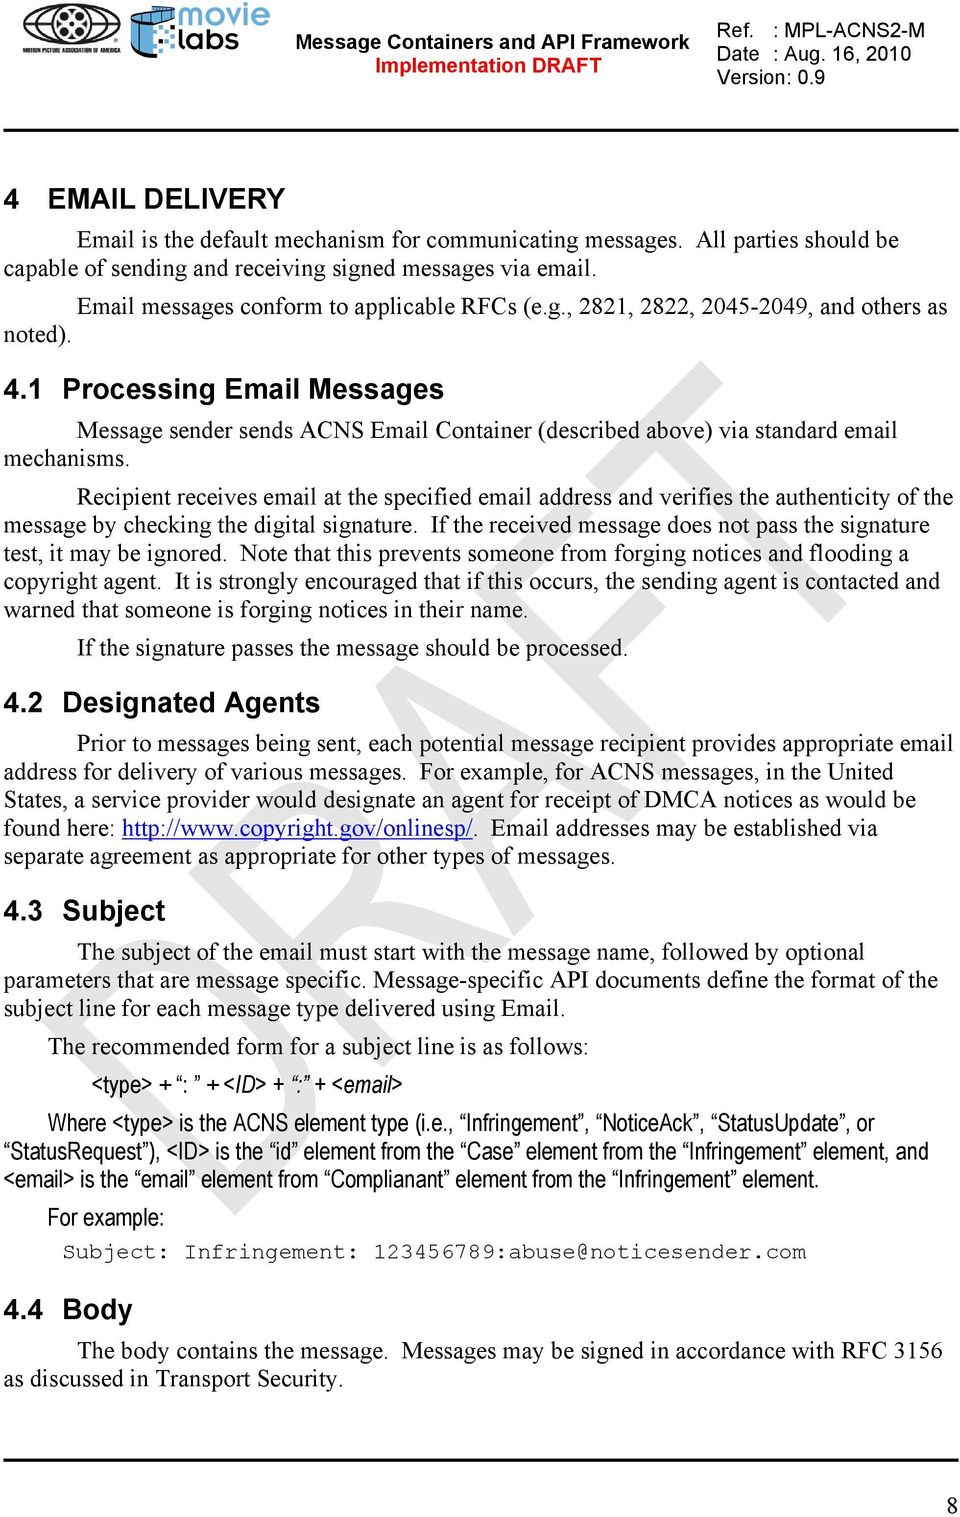 1 Processing Email Messages Message sender sends ACNS Email Container (described above) via standard email mechanisms.